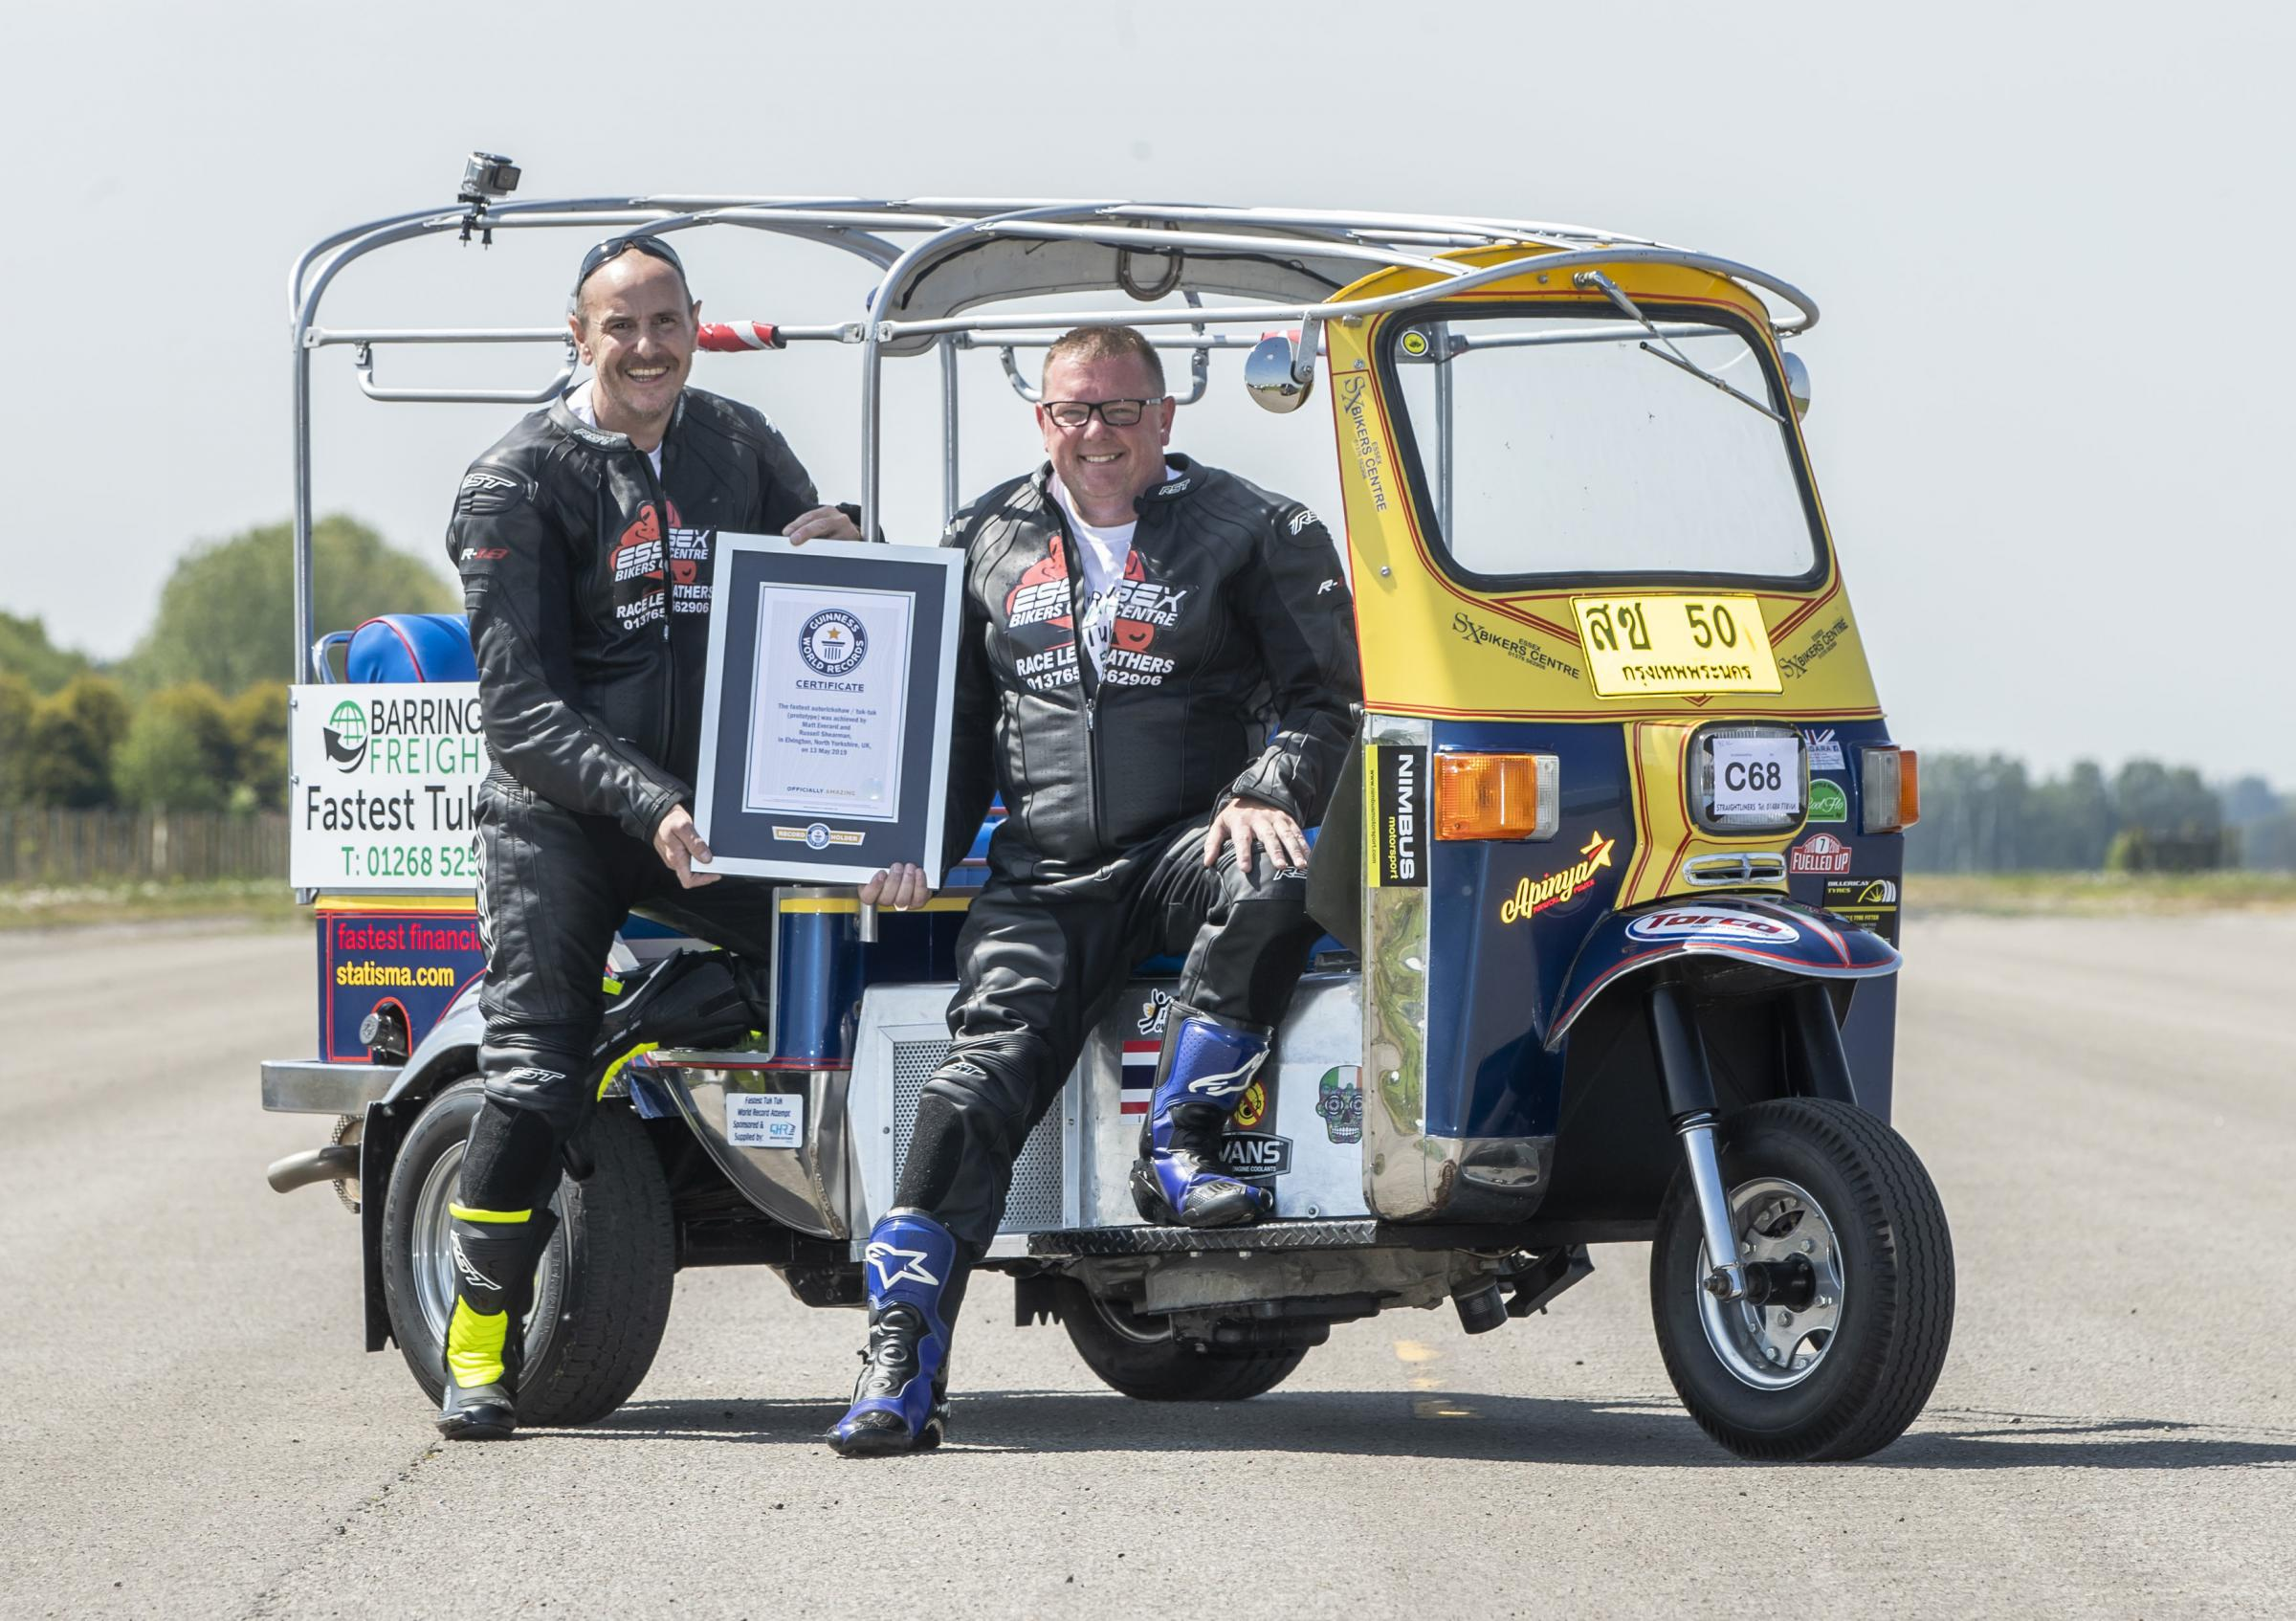 'Over the moon' - Matt Everard (right) and passenger Russell Shearman celebrate their Guinness World Record. Image: Danny Lawson/PA Wire